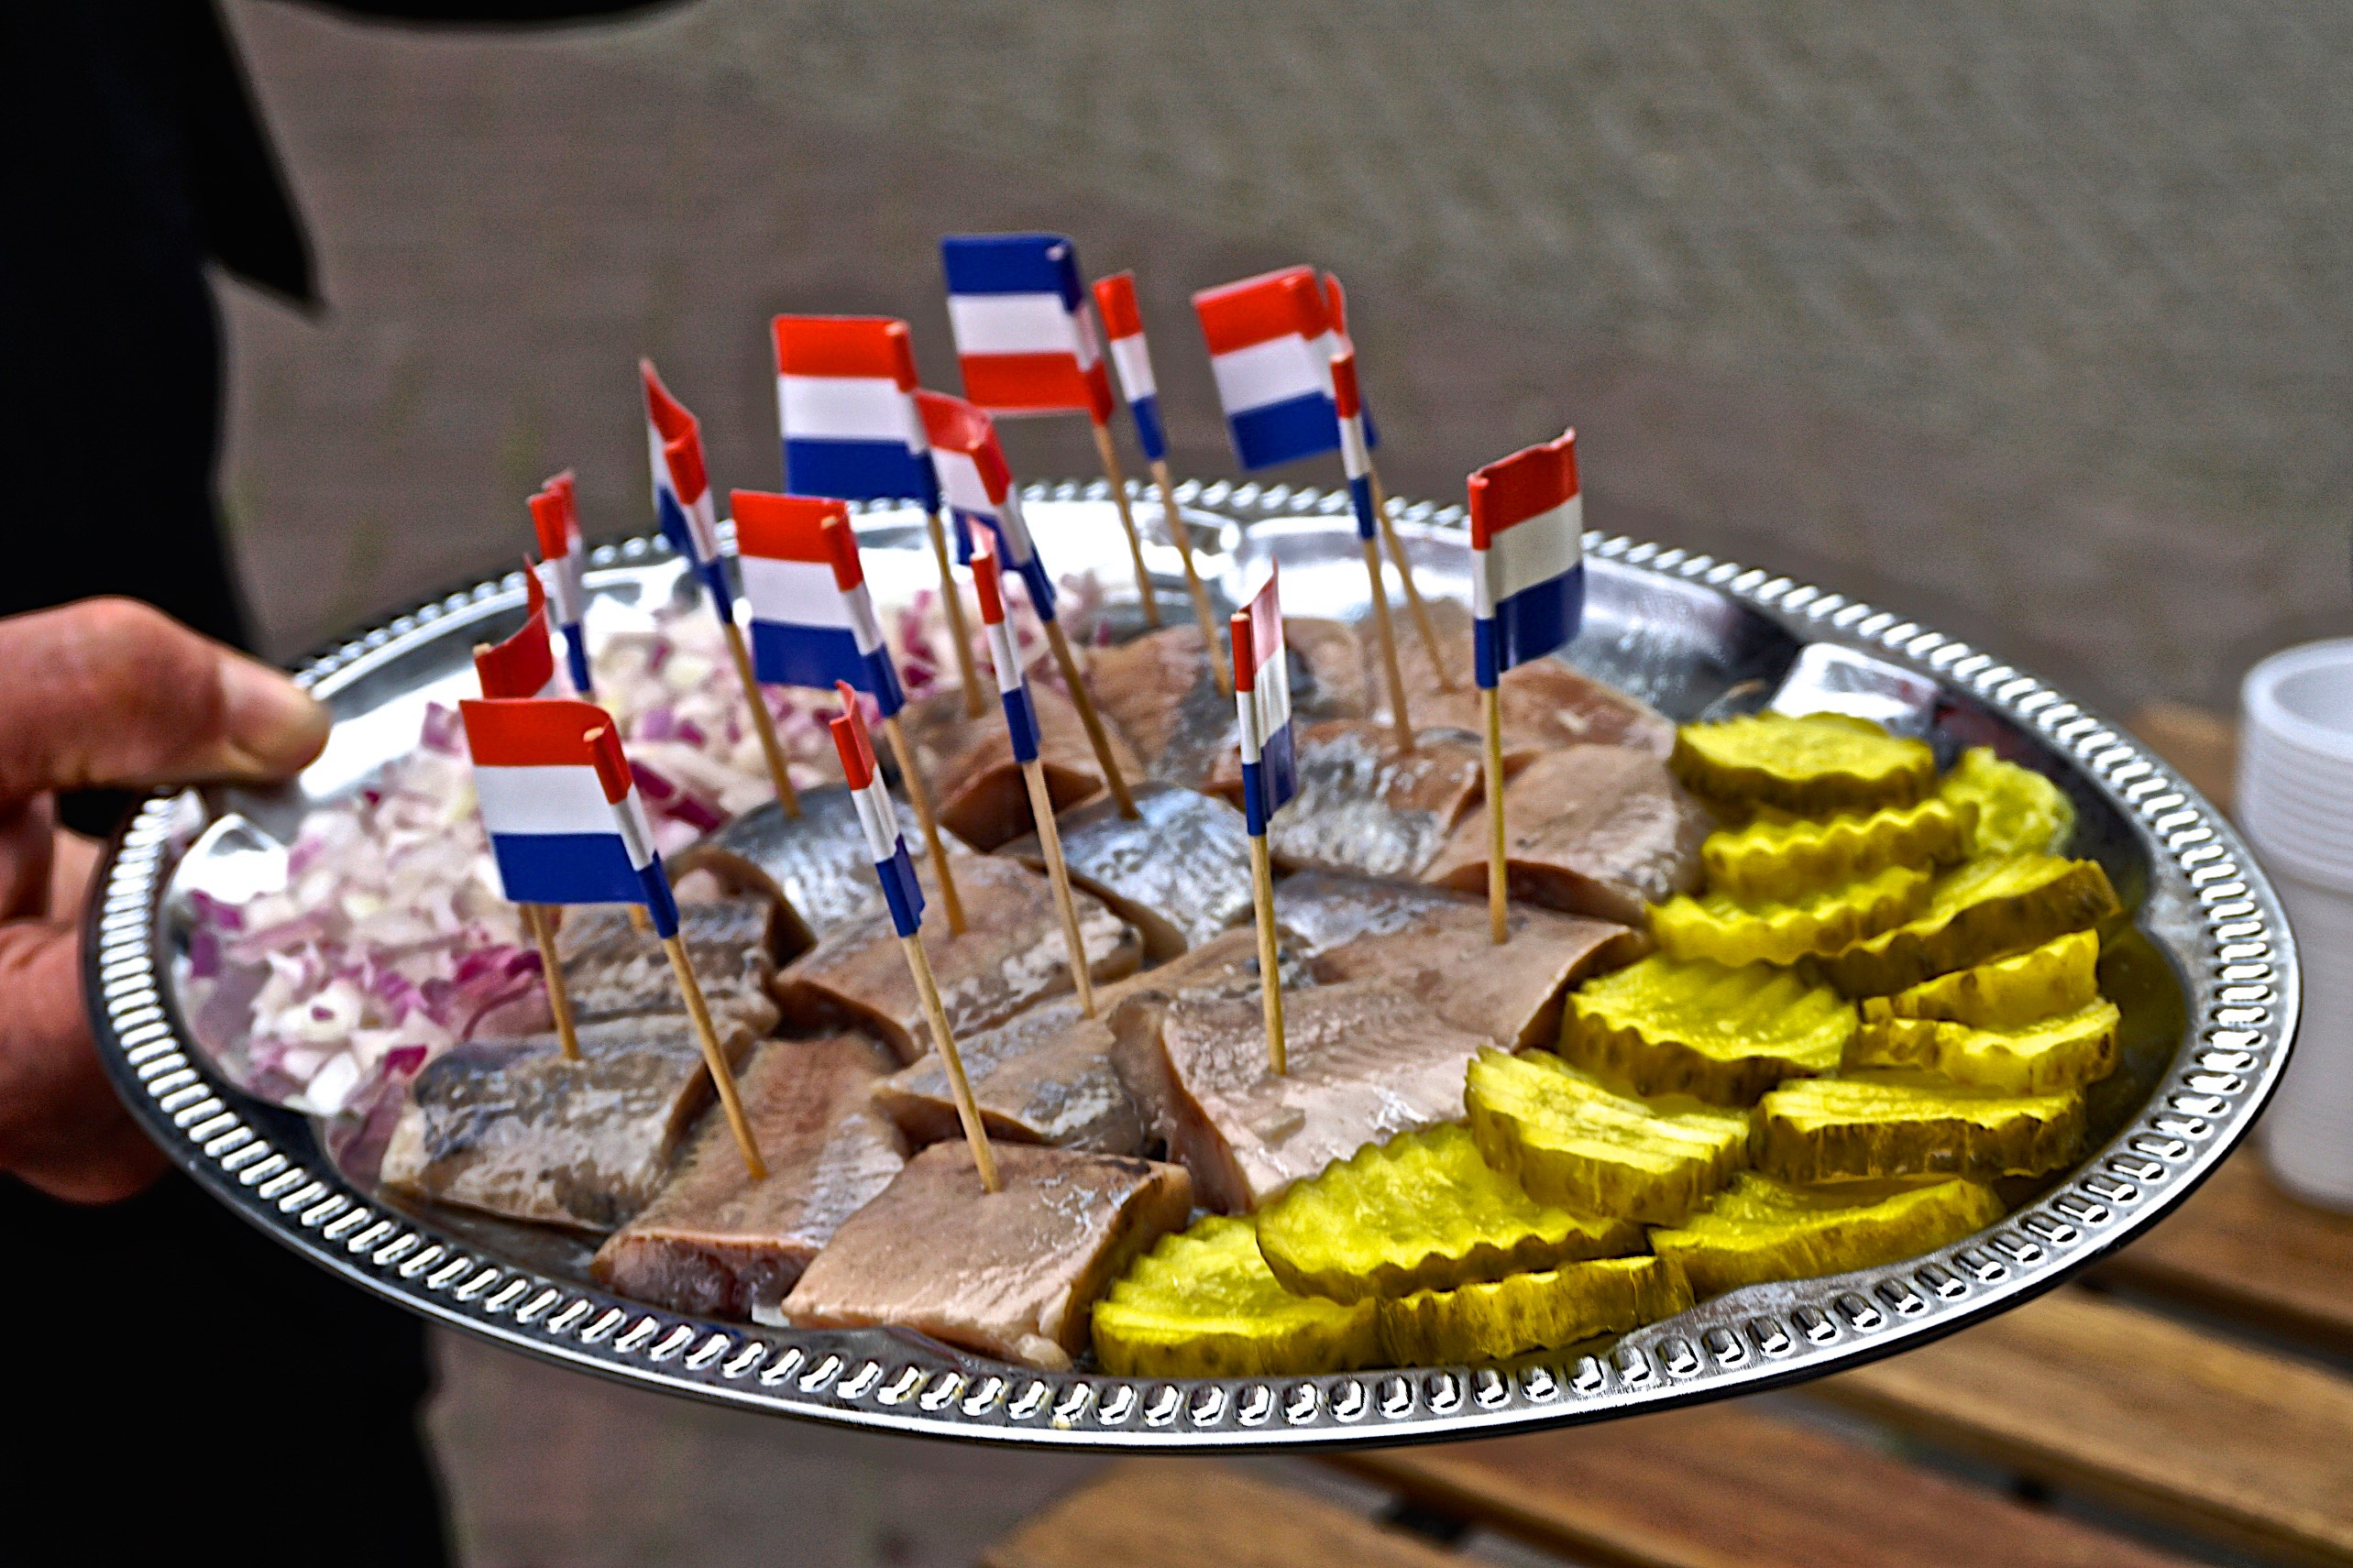 Herrings at Urkel Viswinkel, Jordaan, Amsterdam